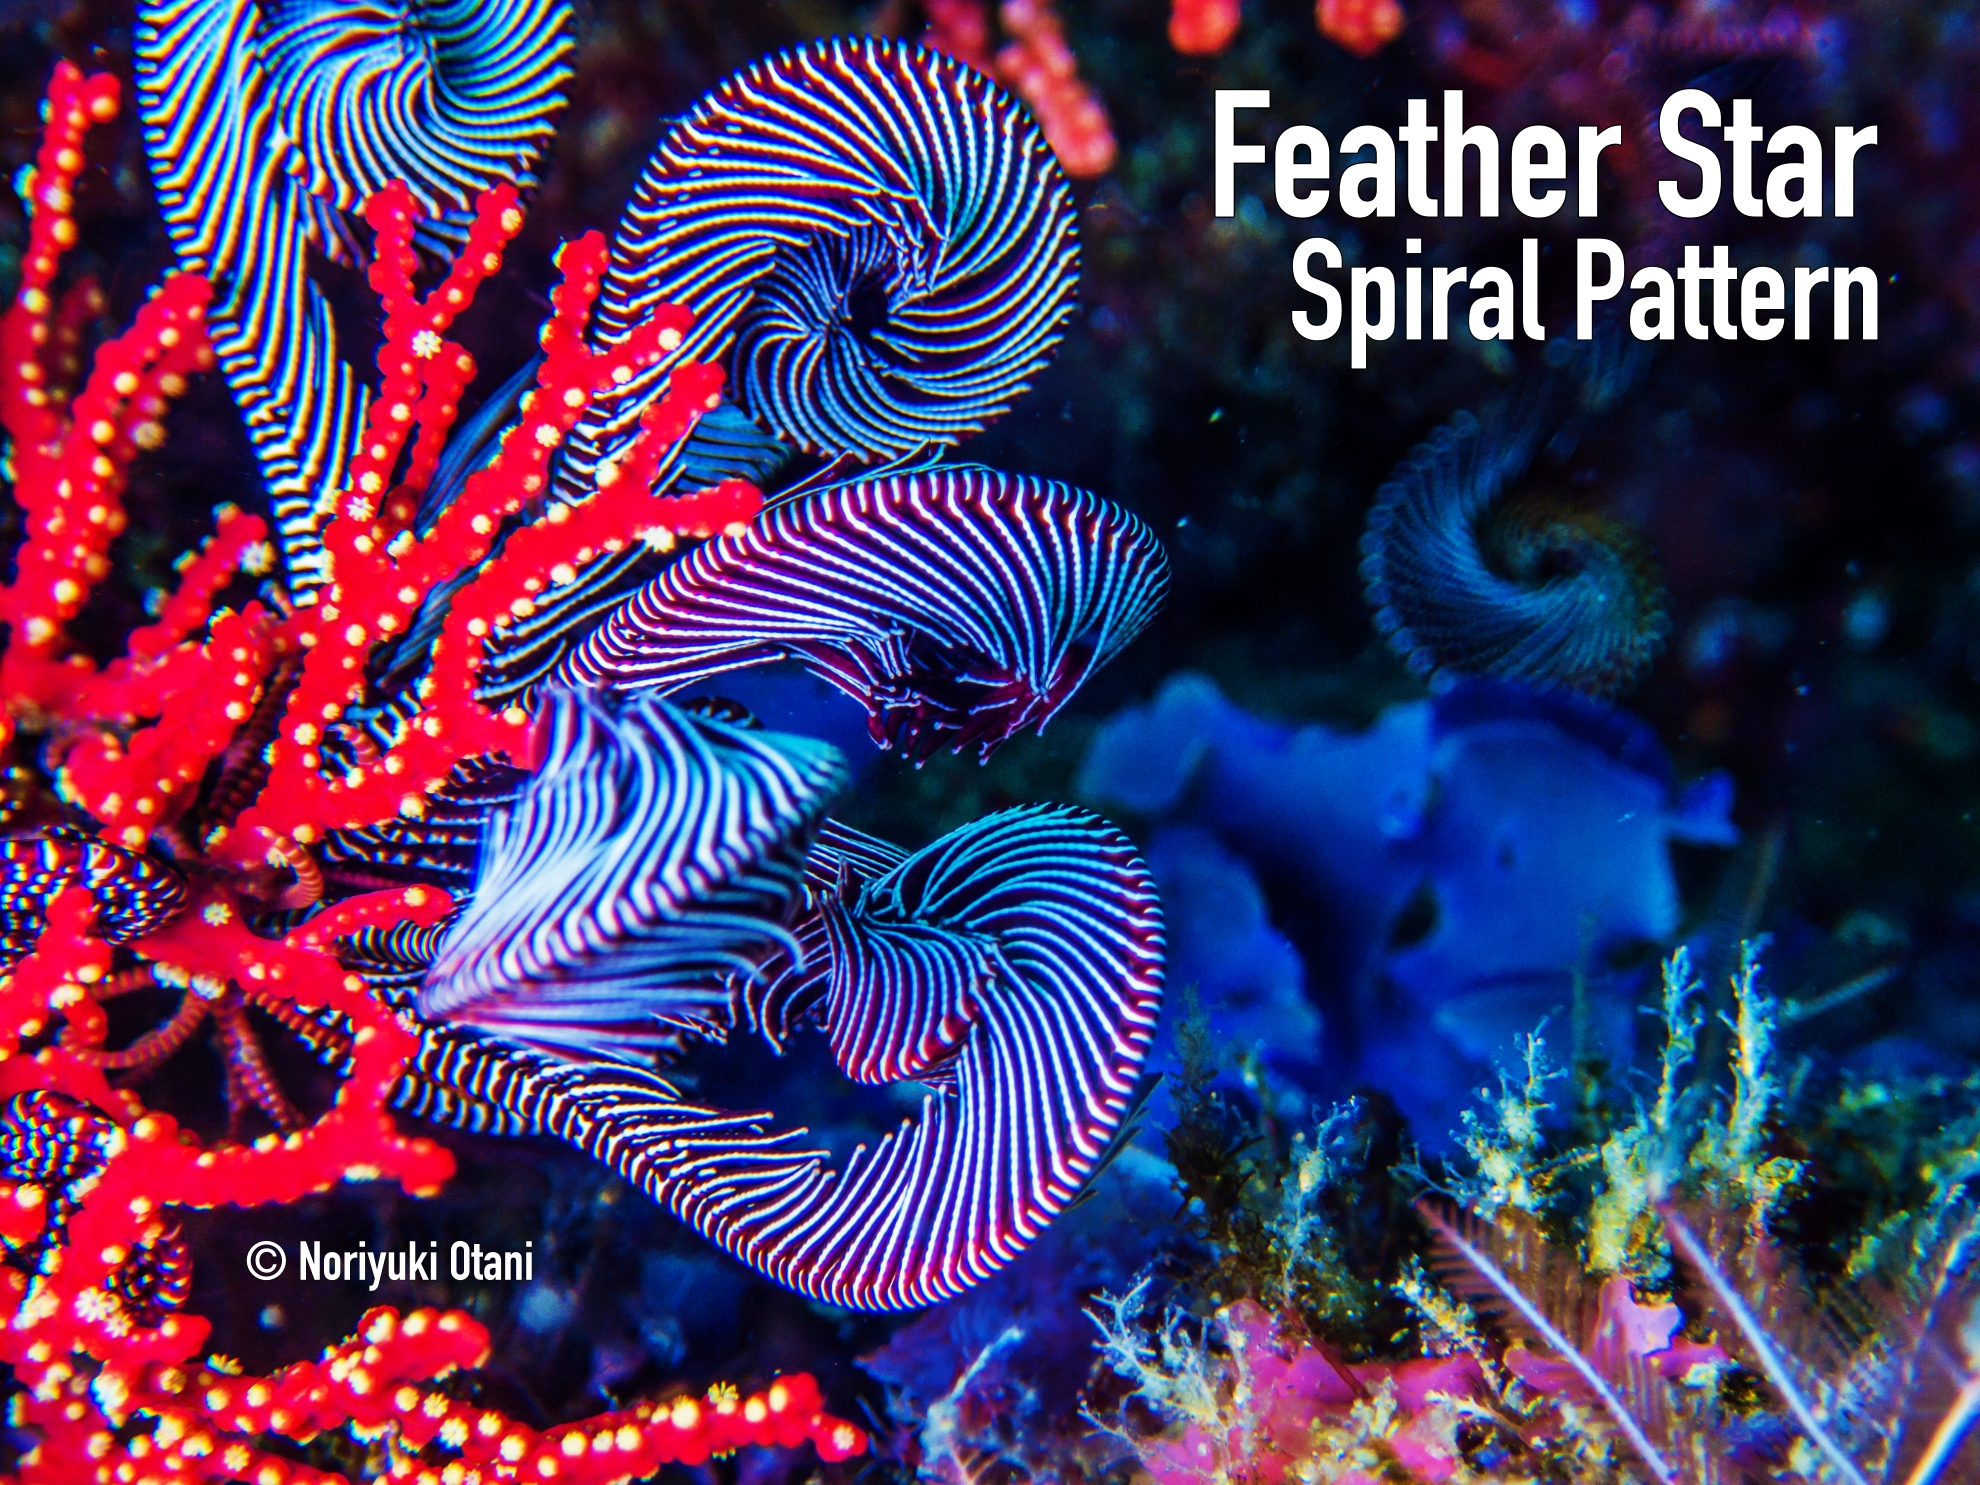 Spiral Pattern in Feather Star ウミシダ 螺旋